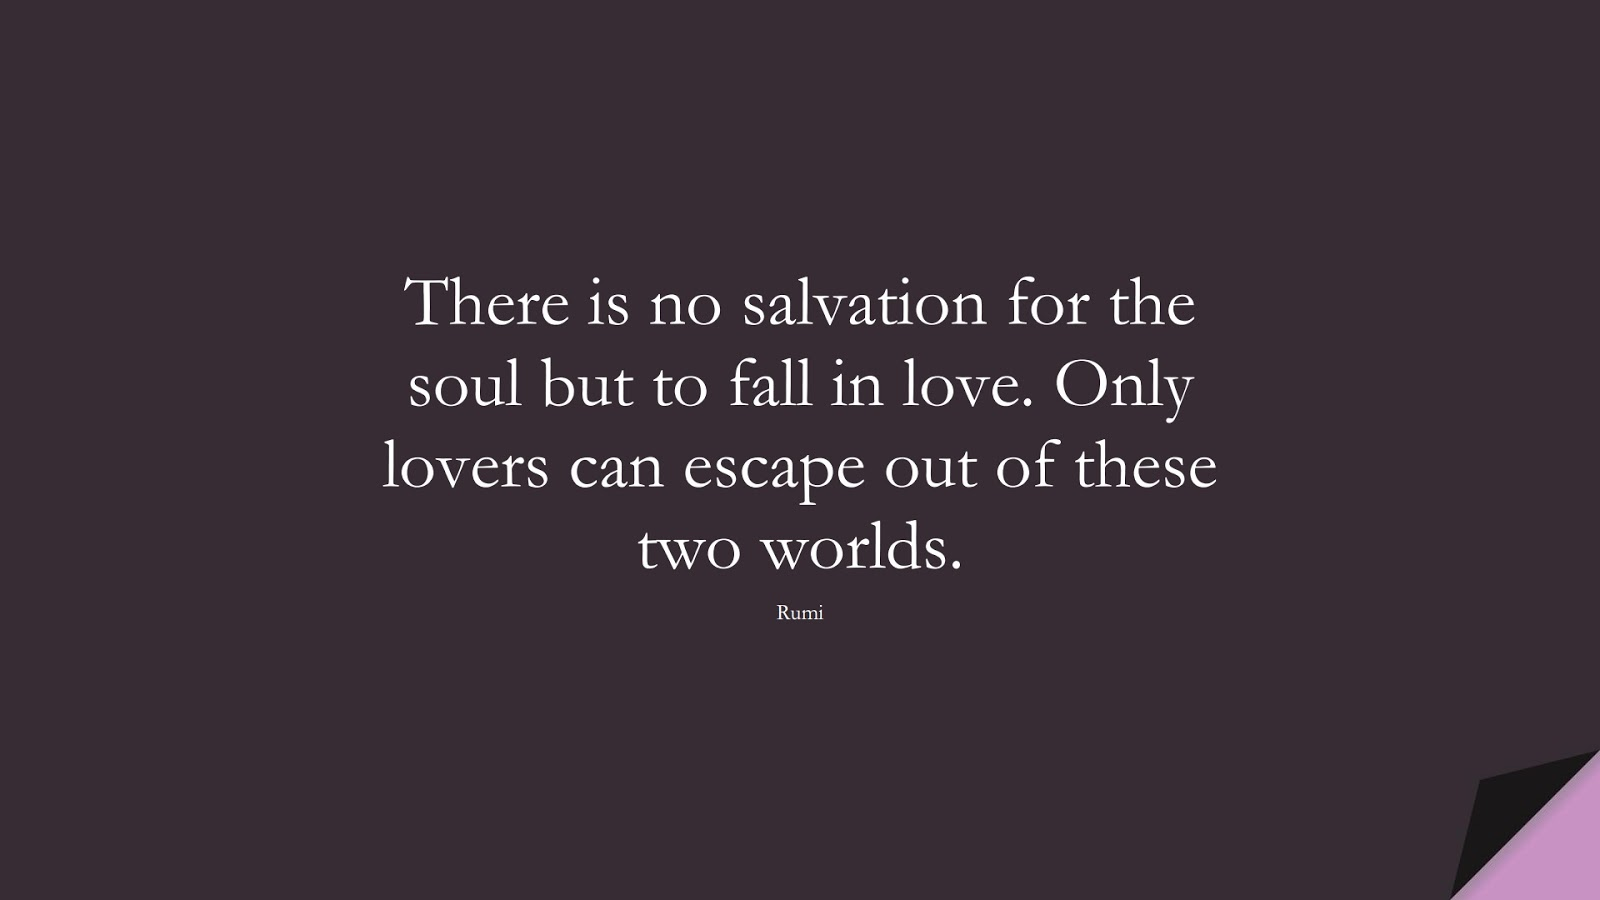 There is no salvation for the soul but to fall in love. Only lovers can escape out of these two worlds. (Rumi);  #RumiQuotes